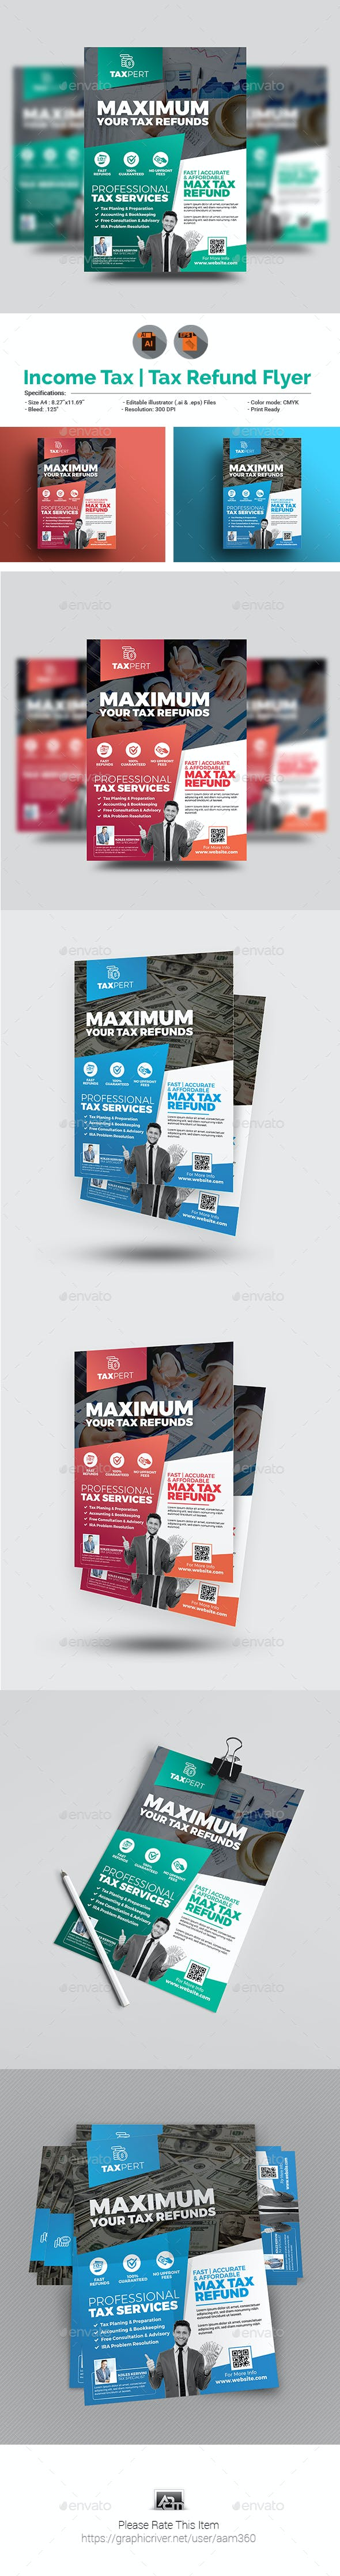 Income Tax Refund Flyer Template